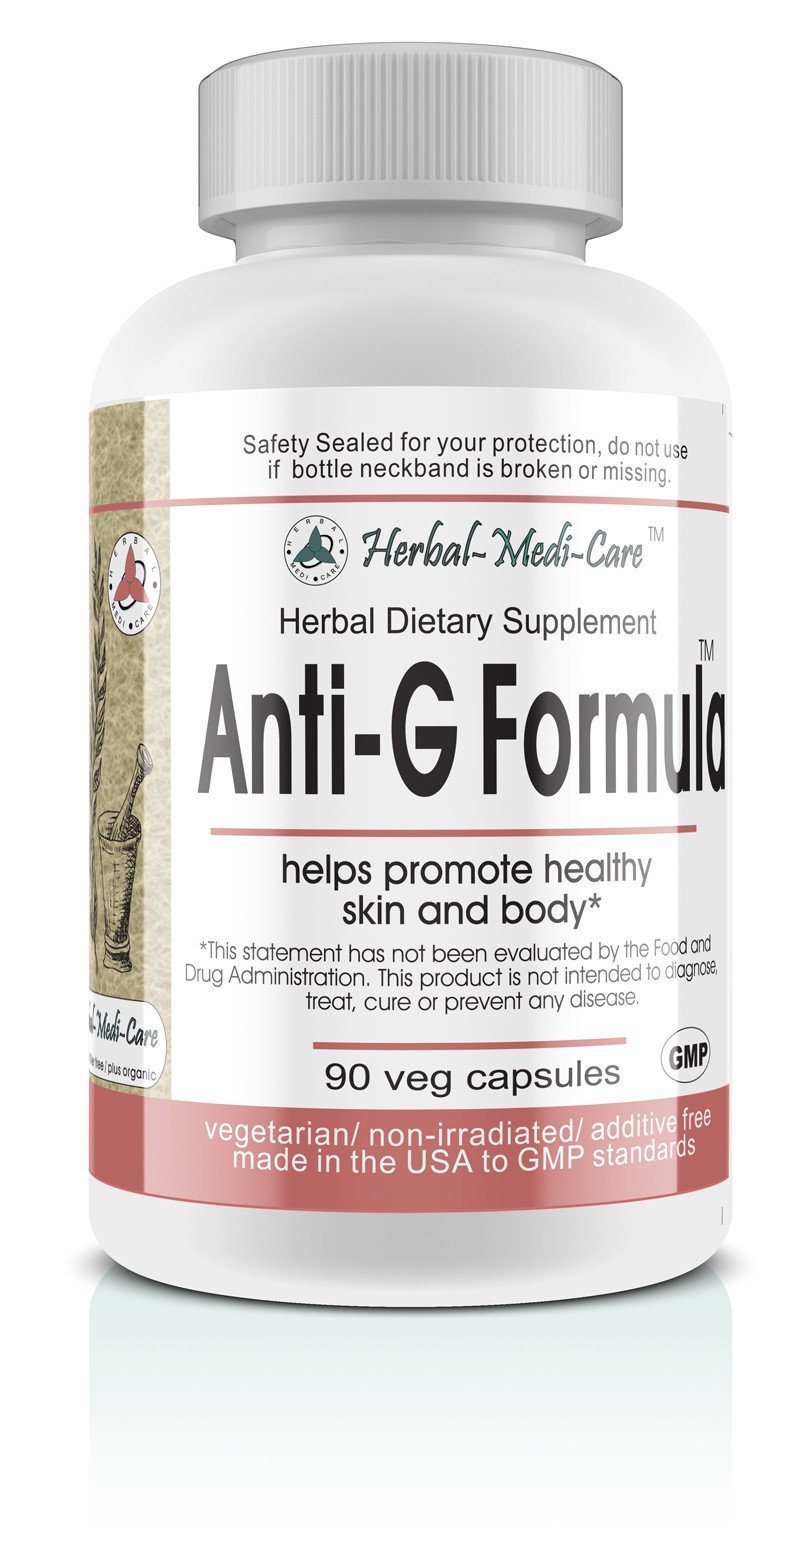 Herbal-Medi-Care Whole Food Anti-G (Anti-Fungal) Vegetarian Capsules; 90-Count - Herbal-Medi-Care Whole Food Anti-G (Anti-Fungal) Vegetarian Capsules; 90-Count - Herbal-Medi-Care Whole Food Anti-G (Anti-Fungal) Vegetarian Capsules; 90-Count